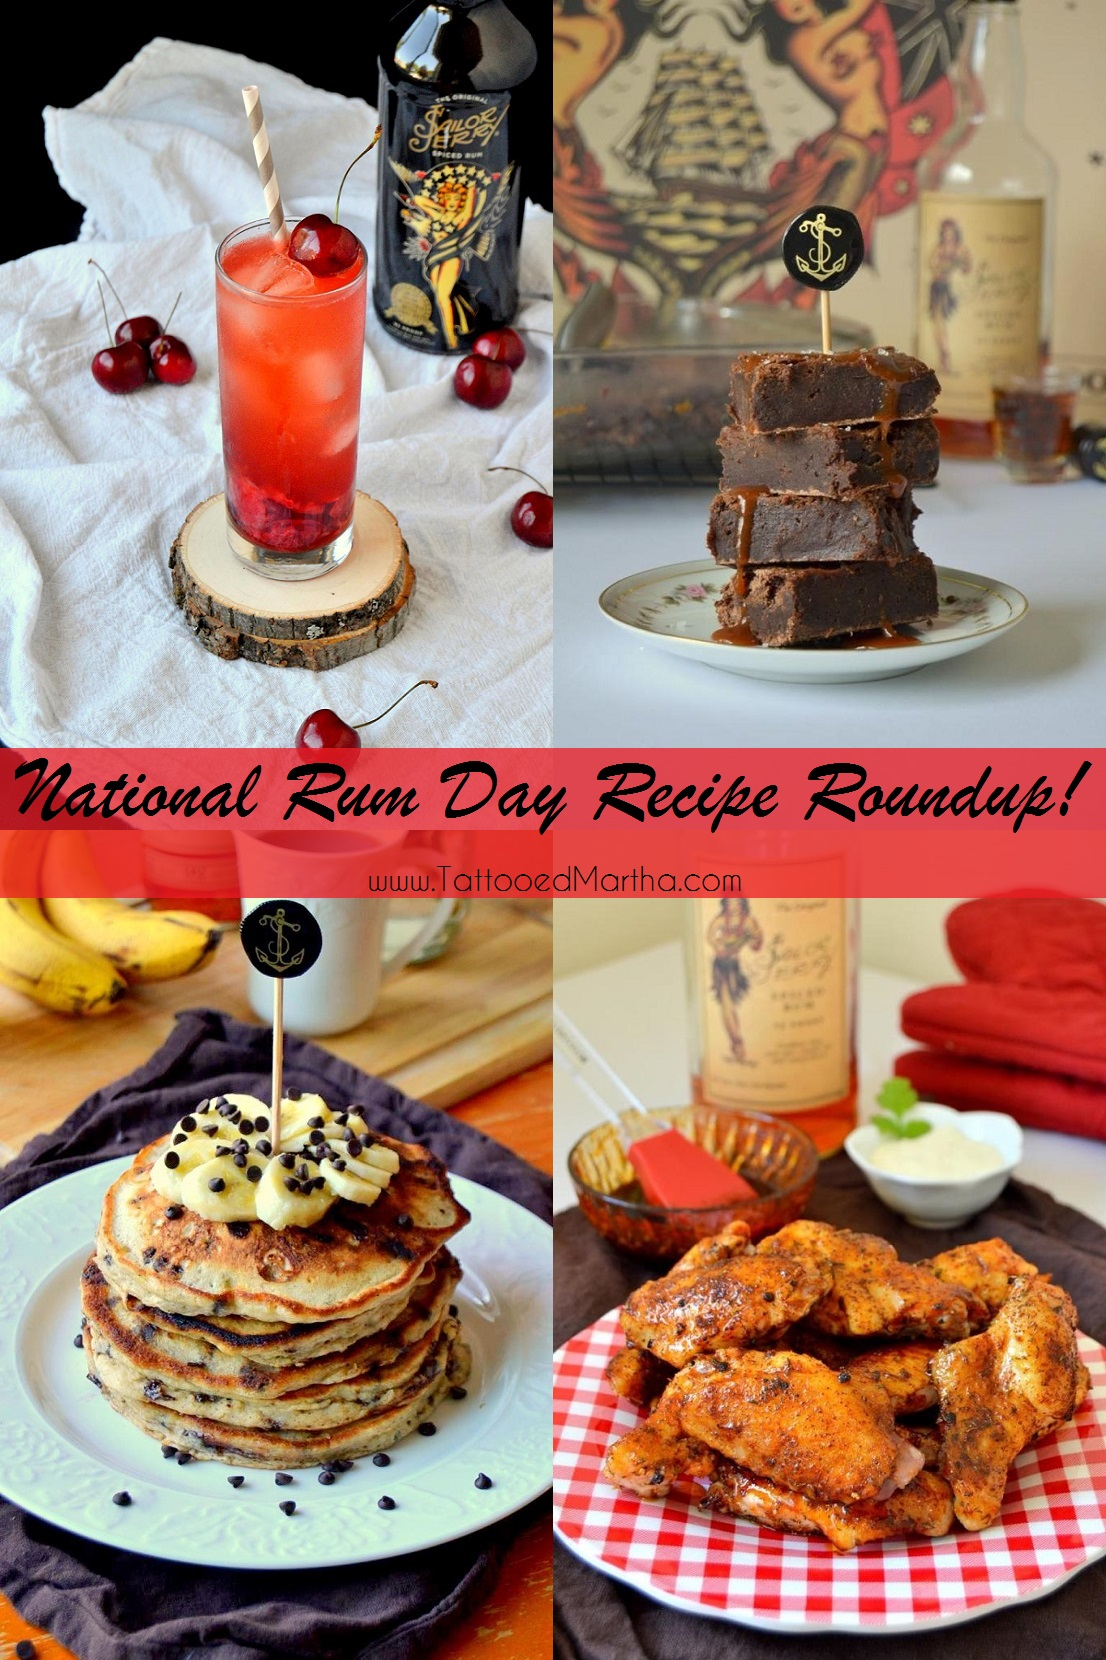 National Rum Day Recipe Roundup